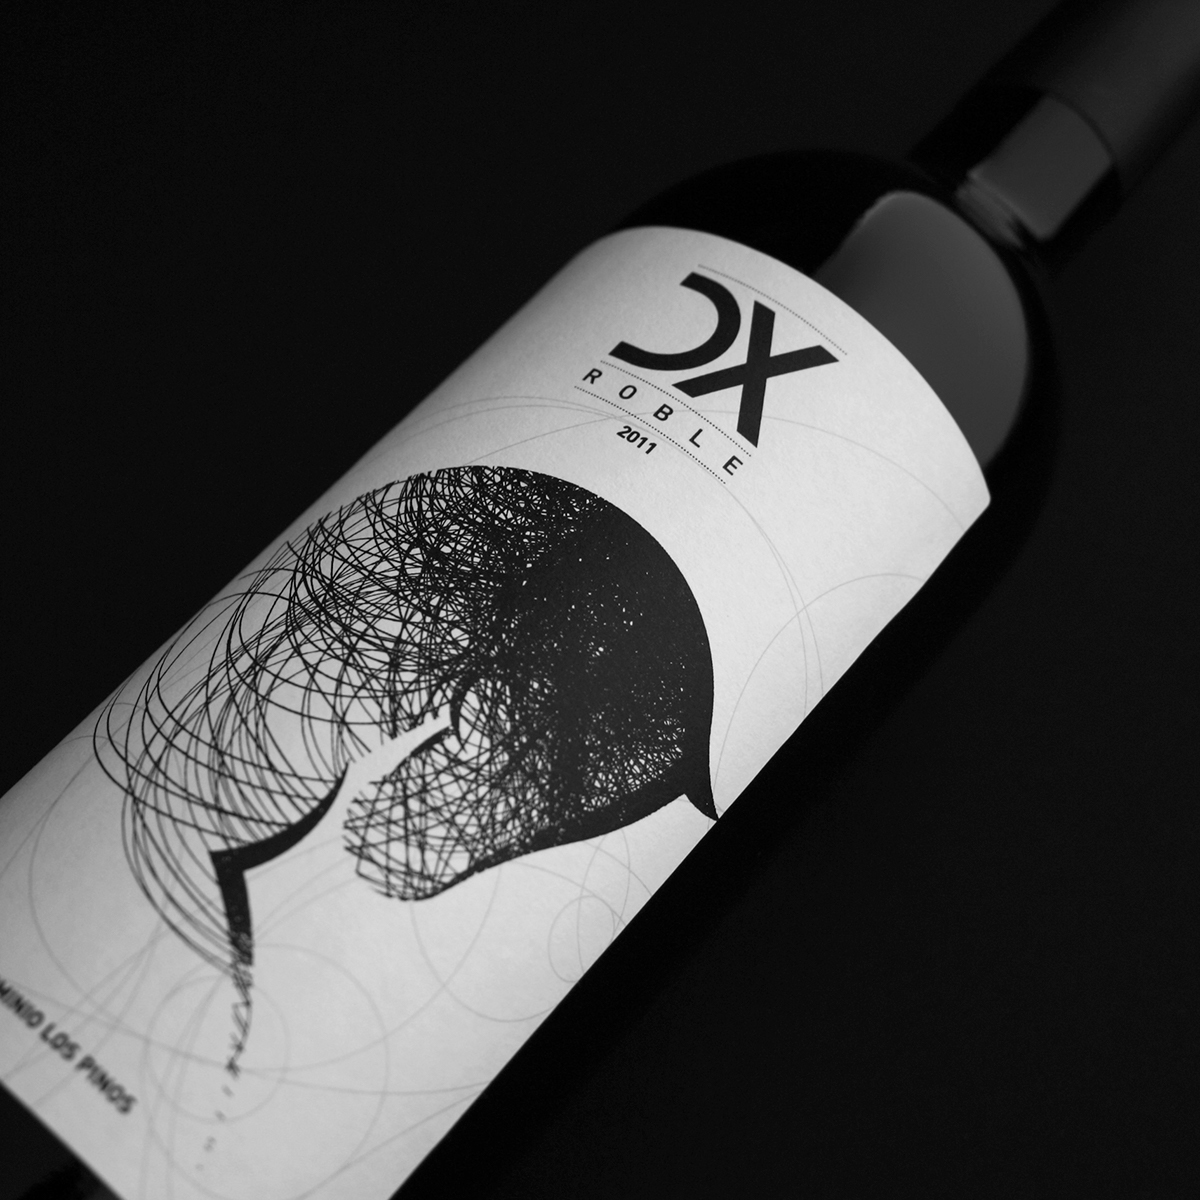 Label design & Identity · DX Roble · Bodegas Los Pinos